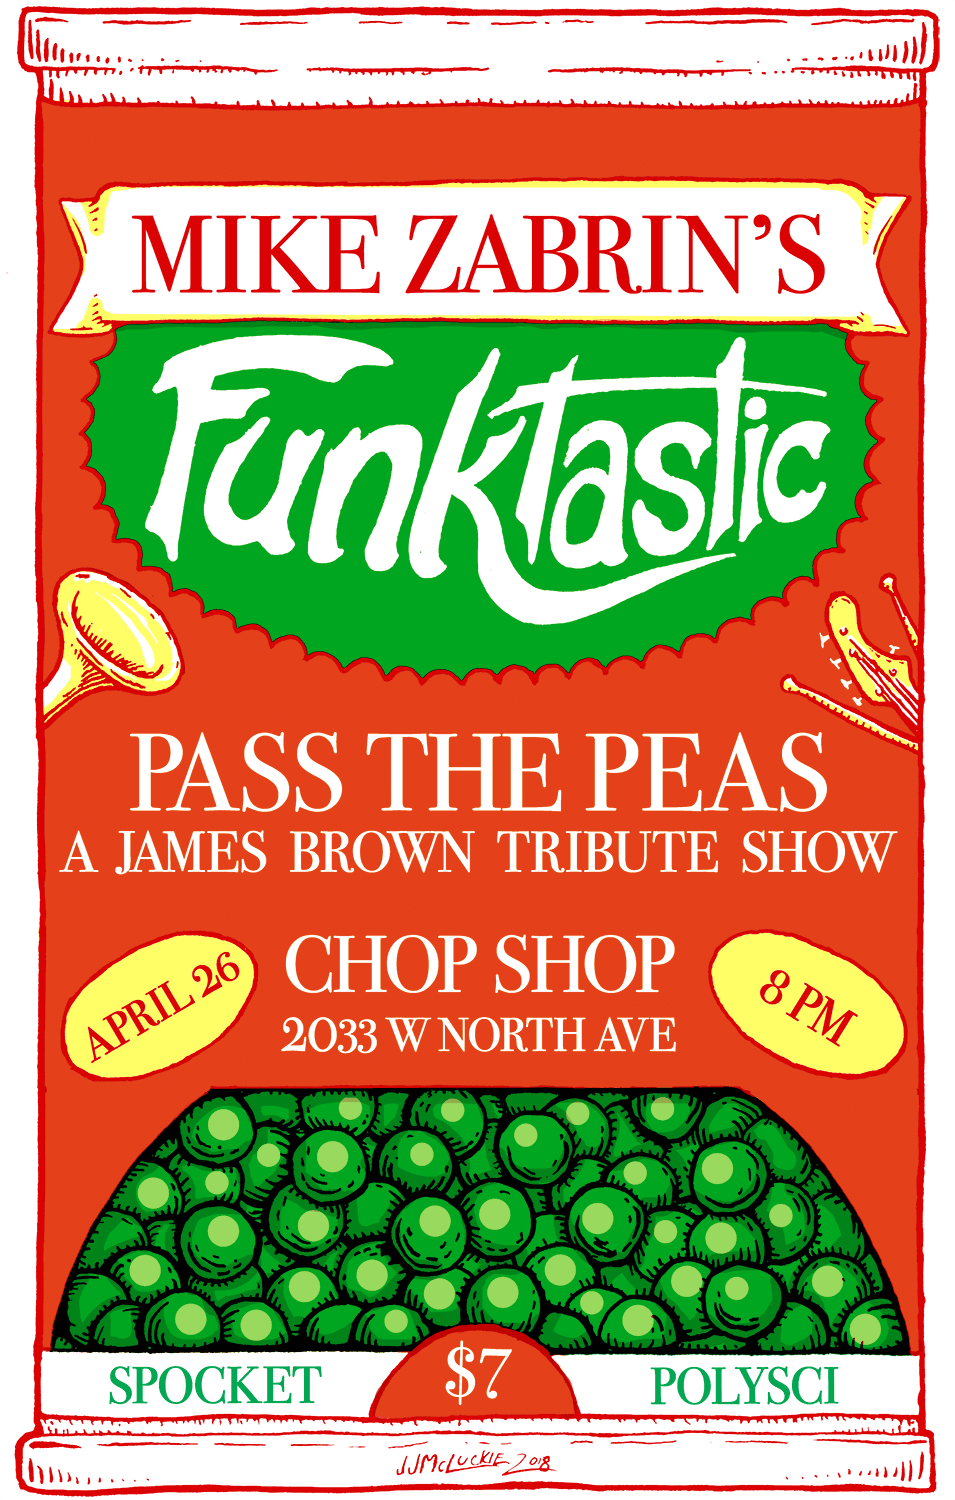 Mike Zabrin's Funktastic Poster